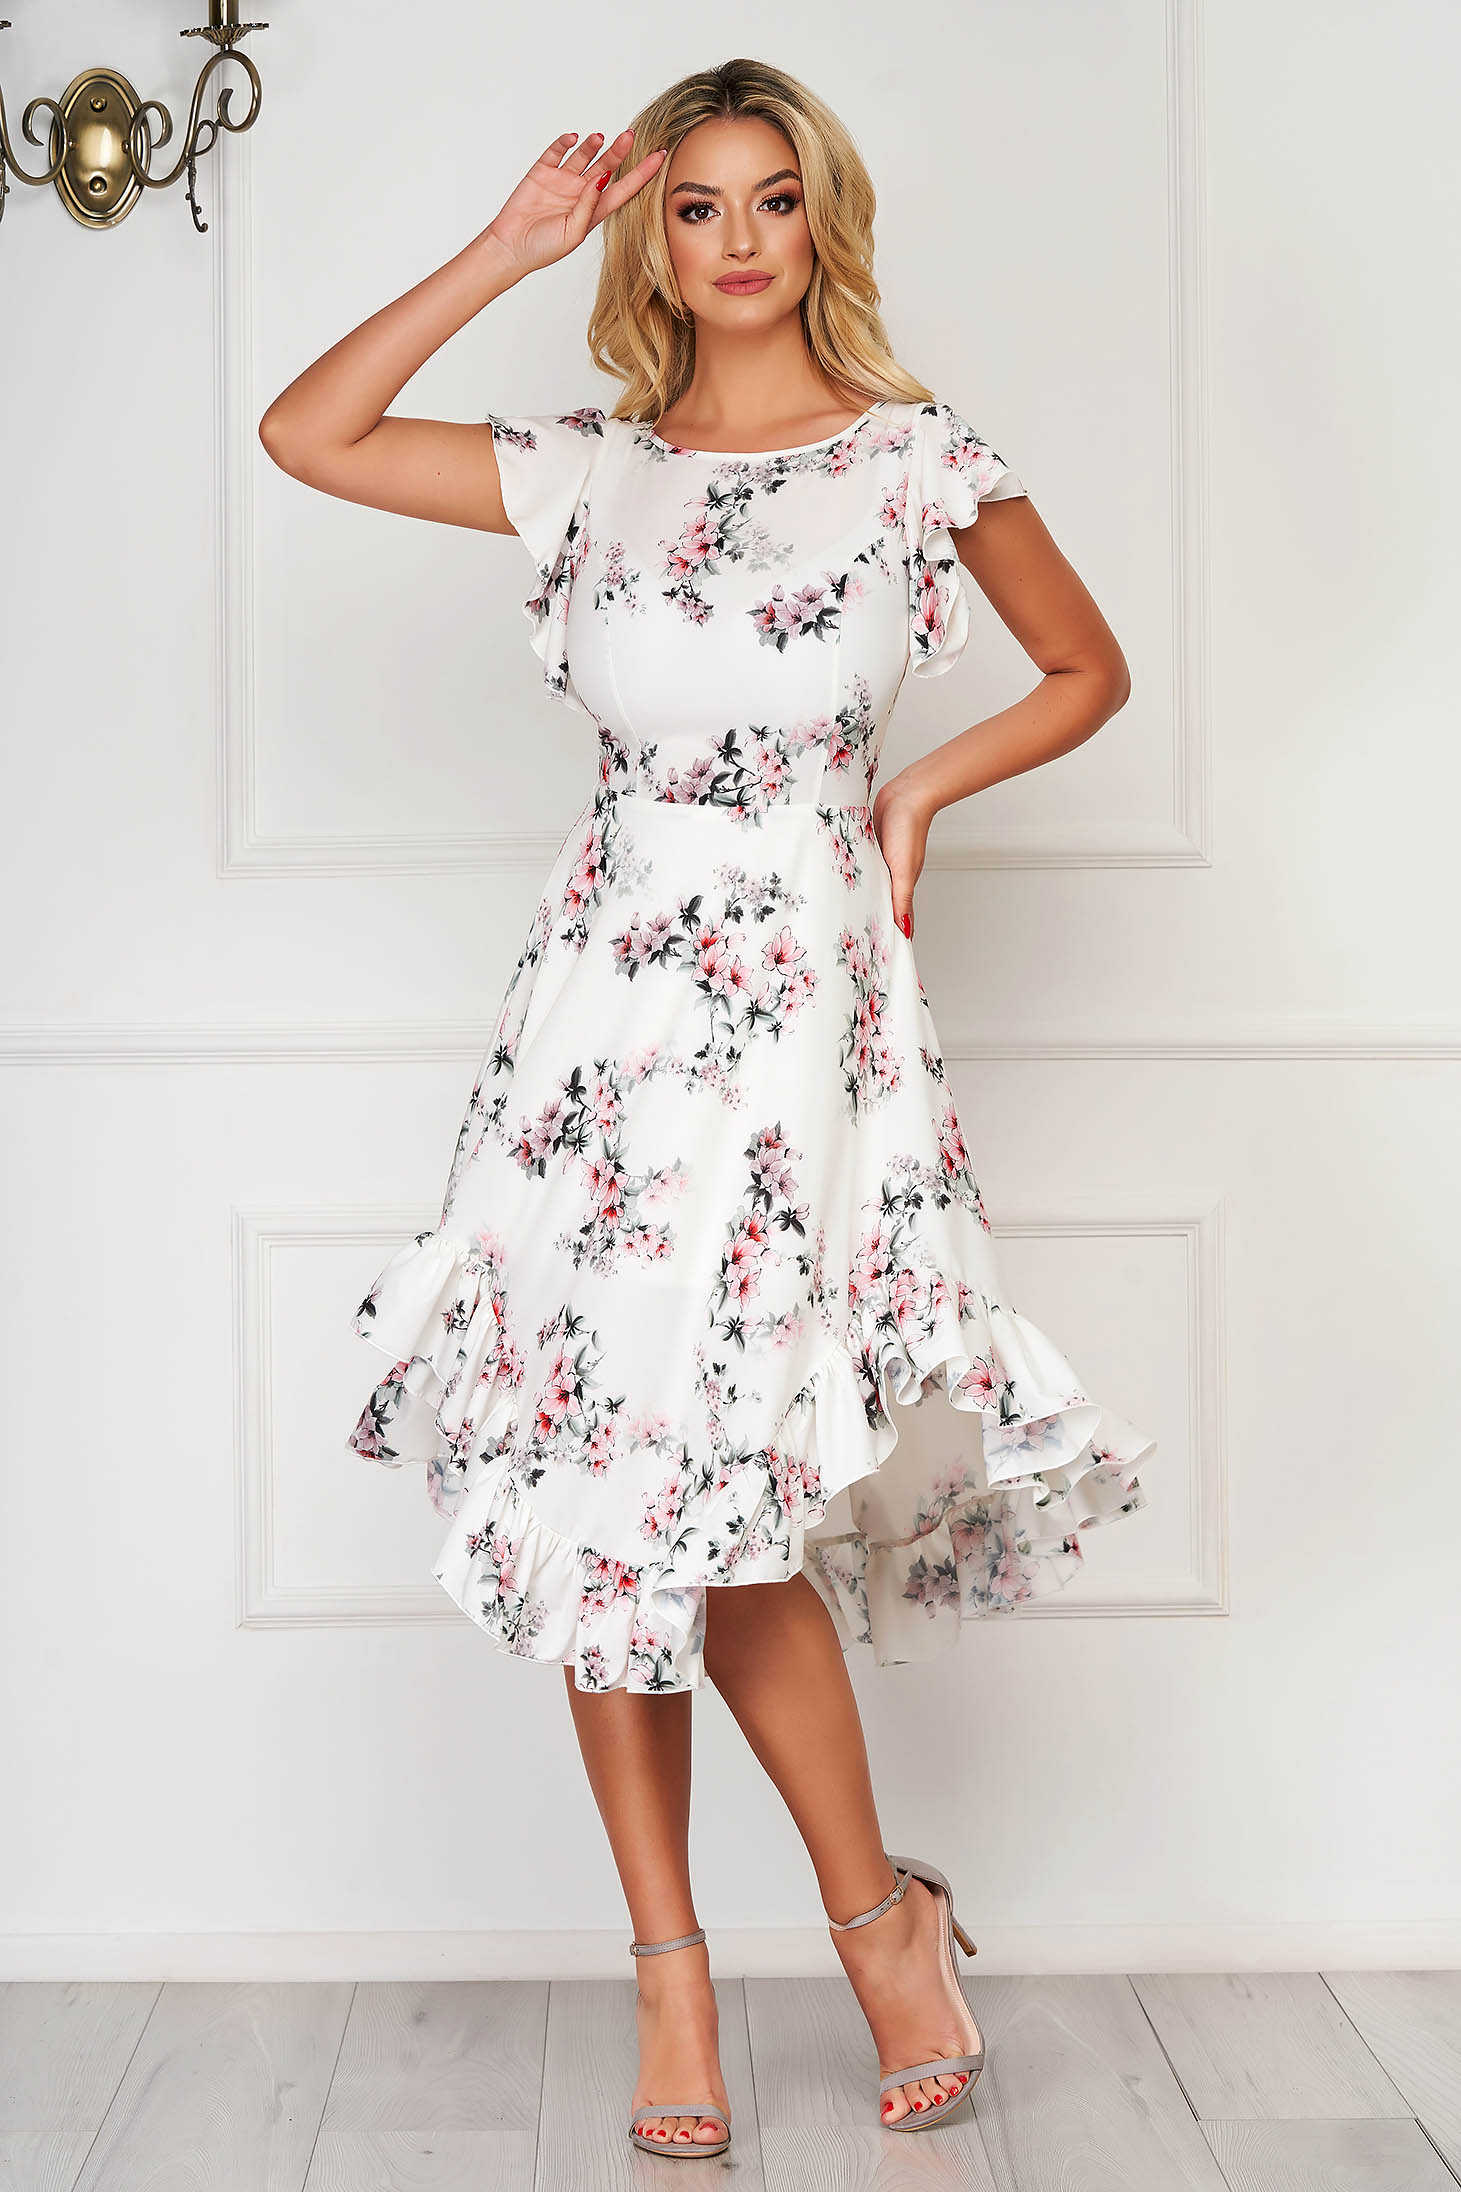 Rochie StarShinerS floral eleganta midi in clos din material moale cu volanase